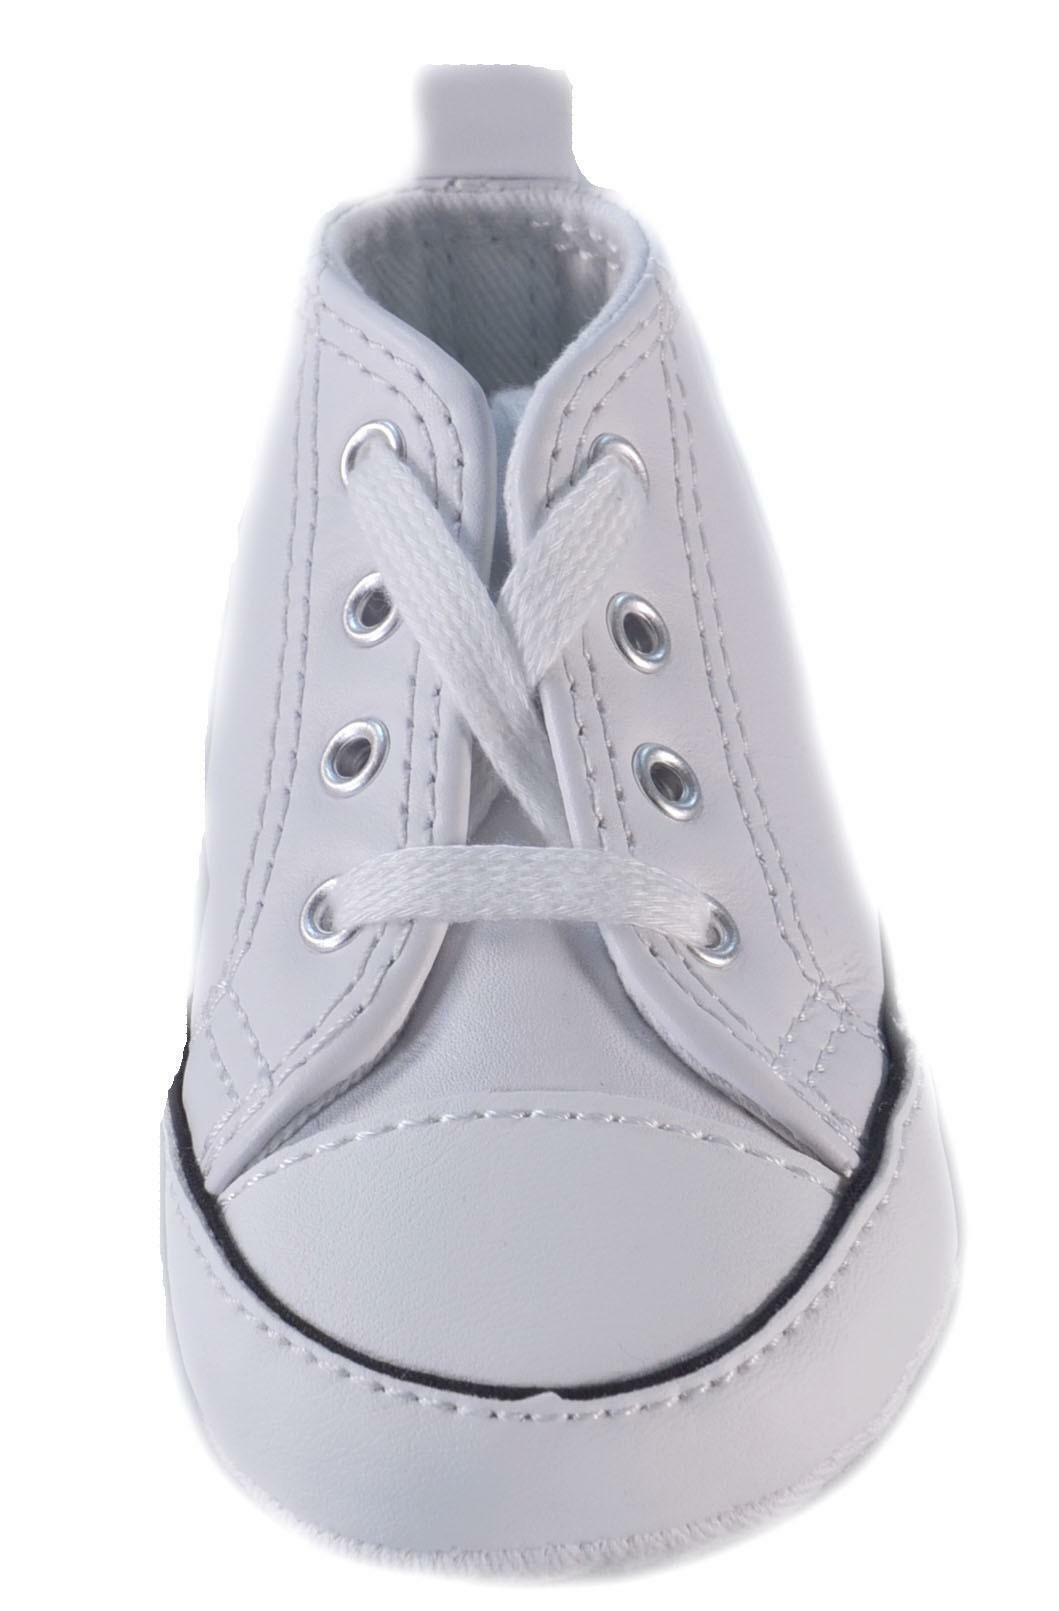 converse all star first star white bianche pelle 81229